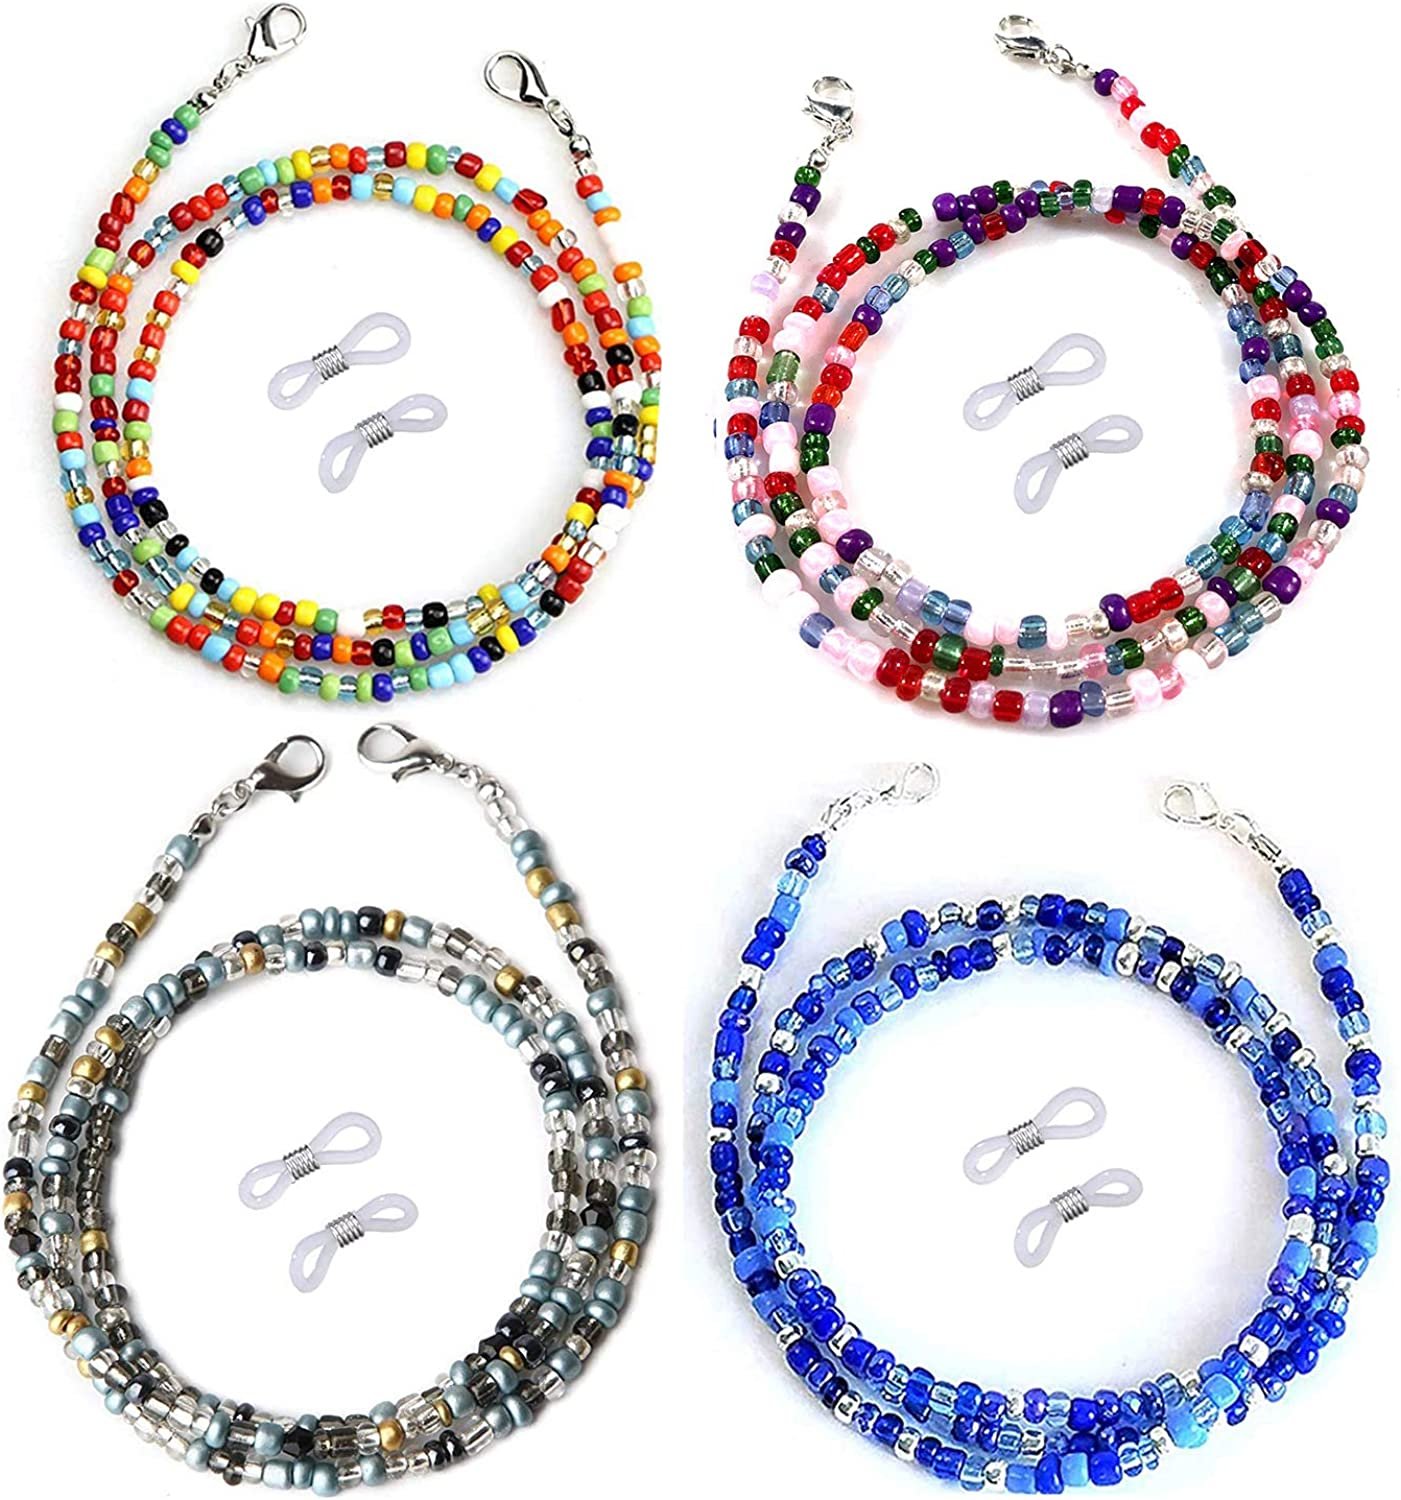 4PCS Beaded Face Mask Lanyards,Colorful Beads Mask Chain Holder for Women Around Neck with Clips